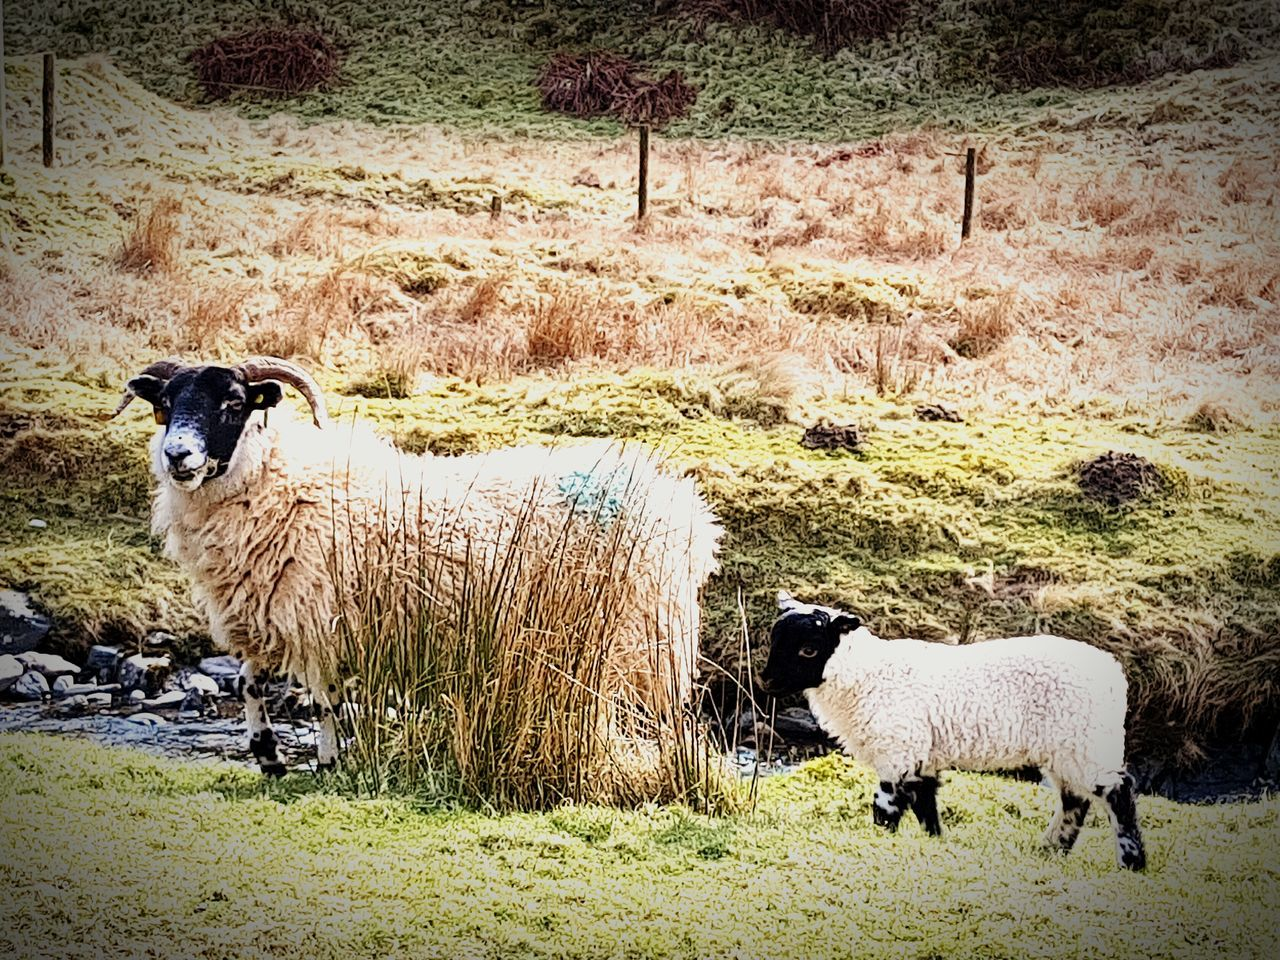 Animal Themes Domestic Animals Livestock Sheep Nature Field Mammal Grass Outdoors Beauty In Nature No People Day Taking Pictures S7 Edge Taking Photos Dumfries And Galloway S7 Edge Photography Landscape Nature S7edgephotography Scenics Drivingshots Beauty In Nature Showcase March 2017 Animal Love